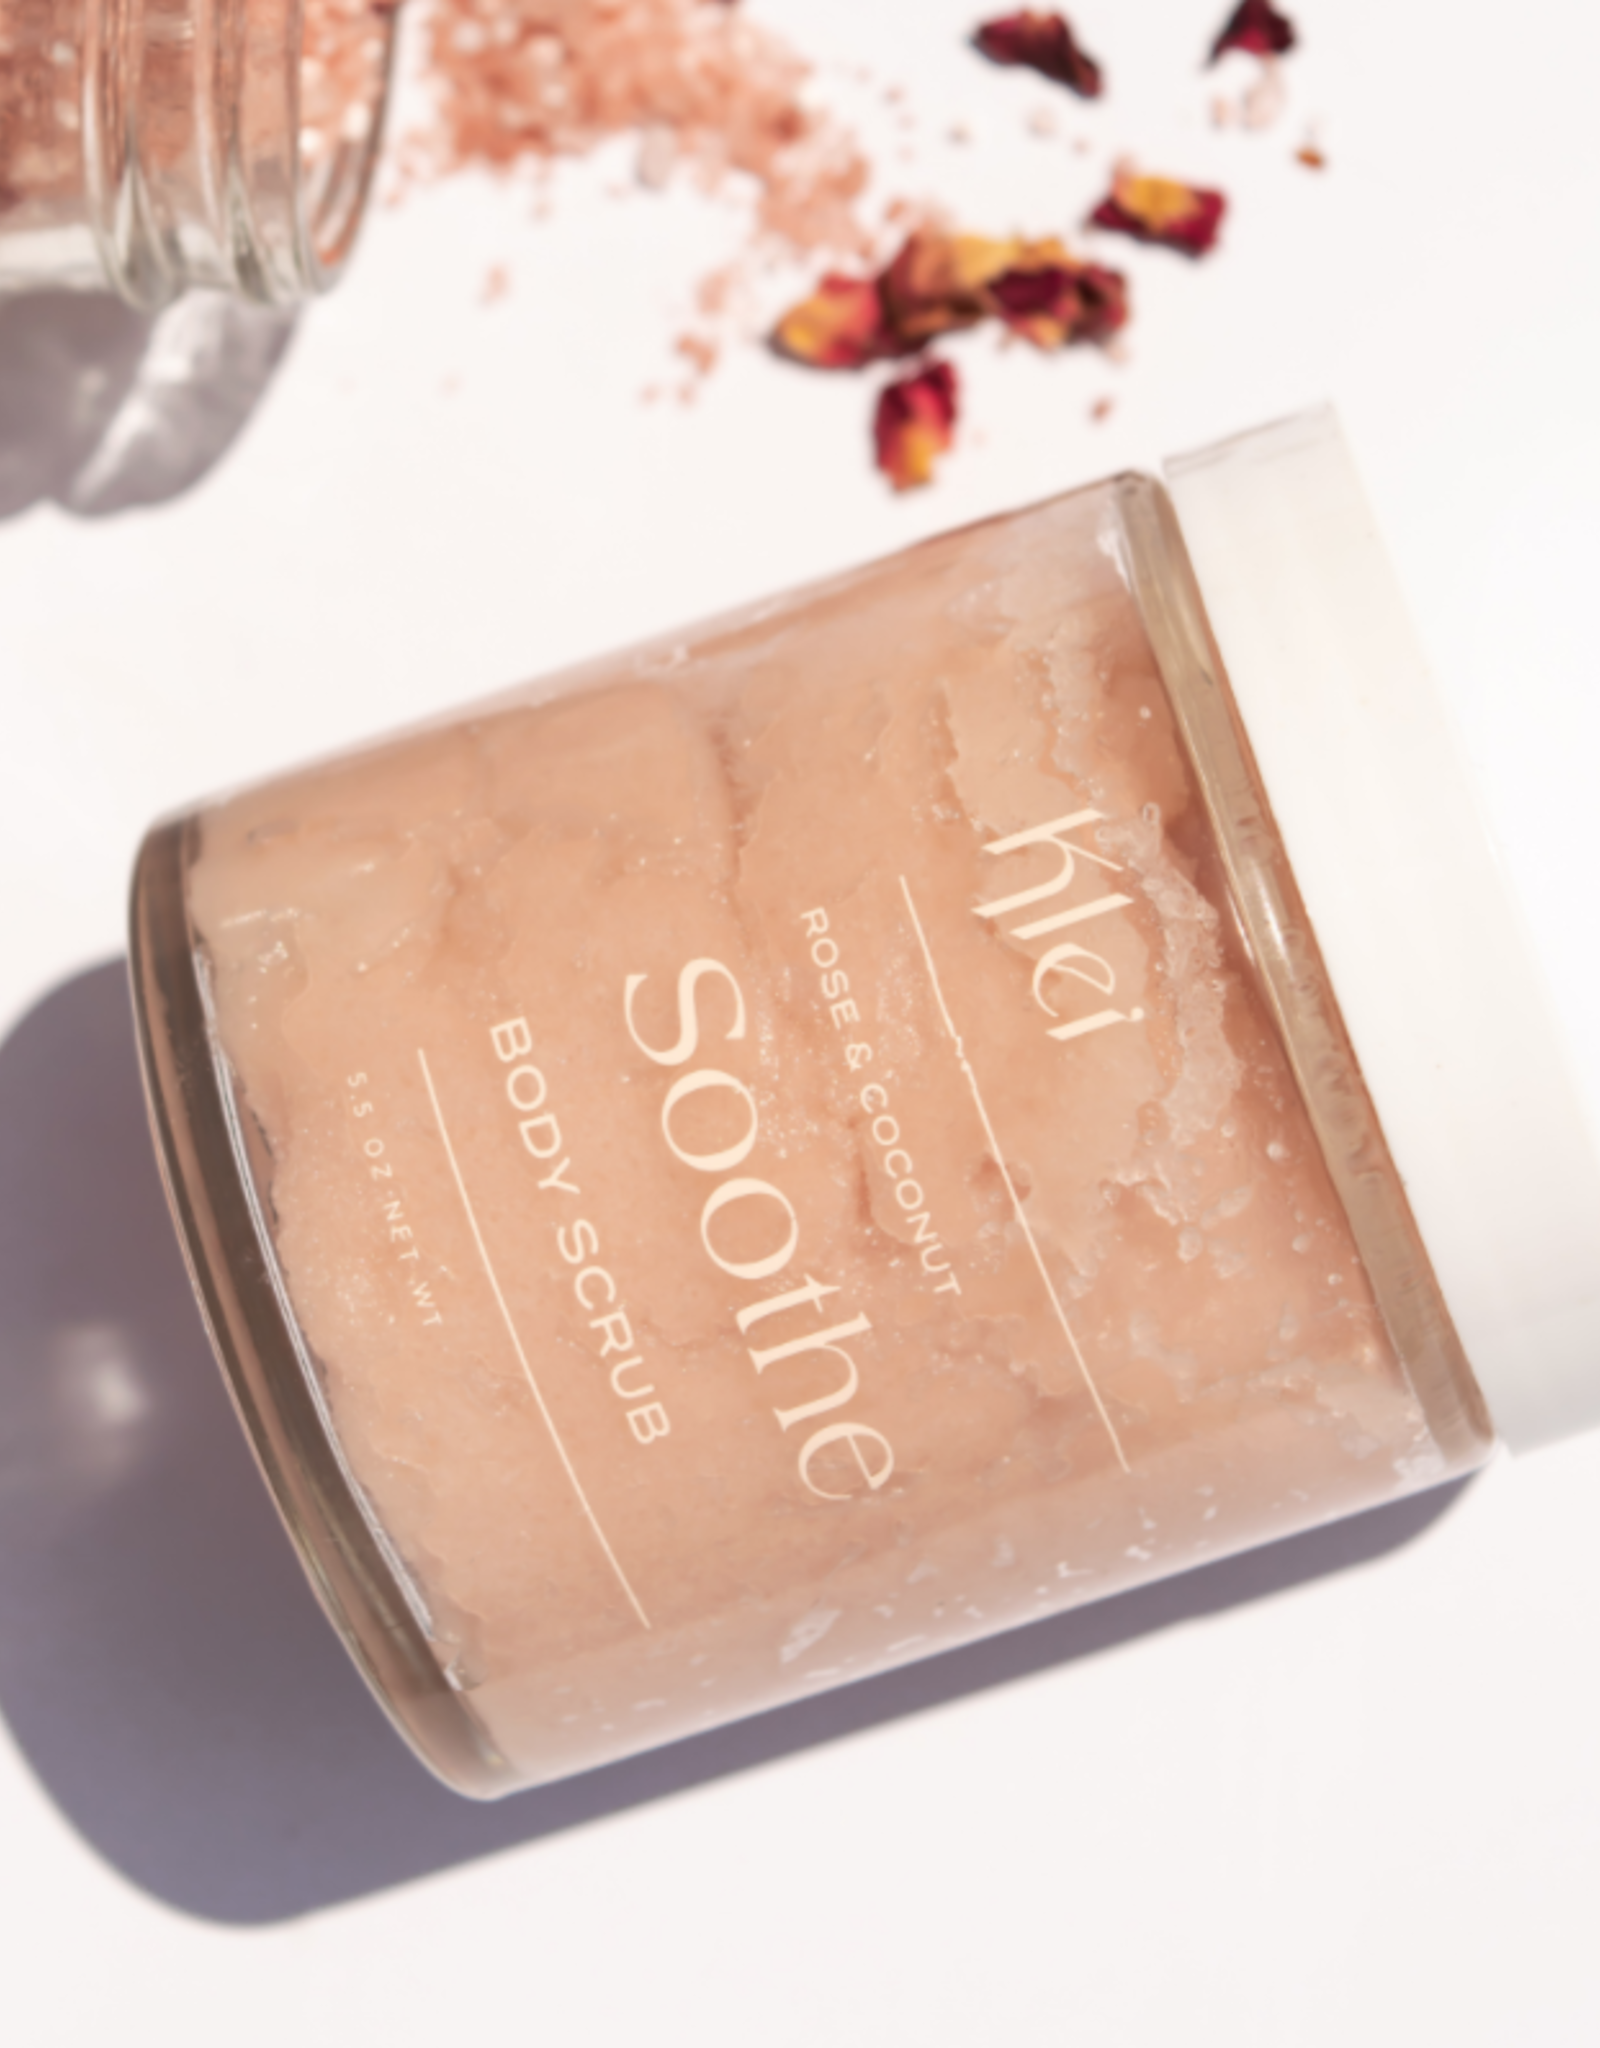 Soothe Rose & Coconut Body Scrub